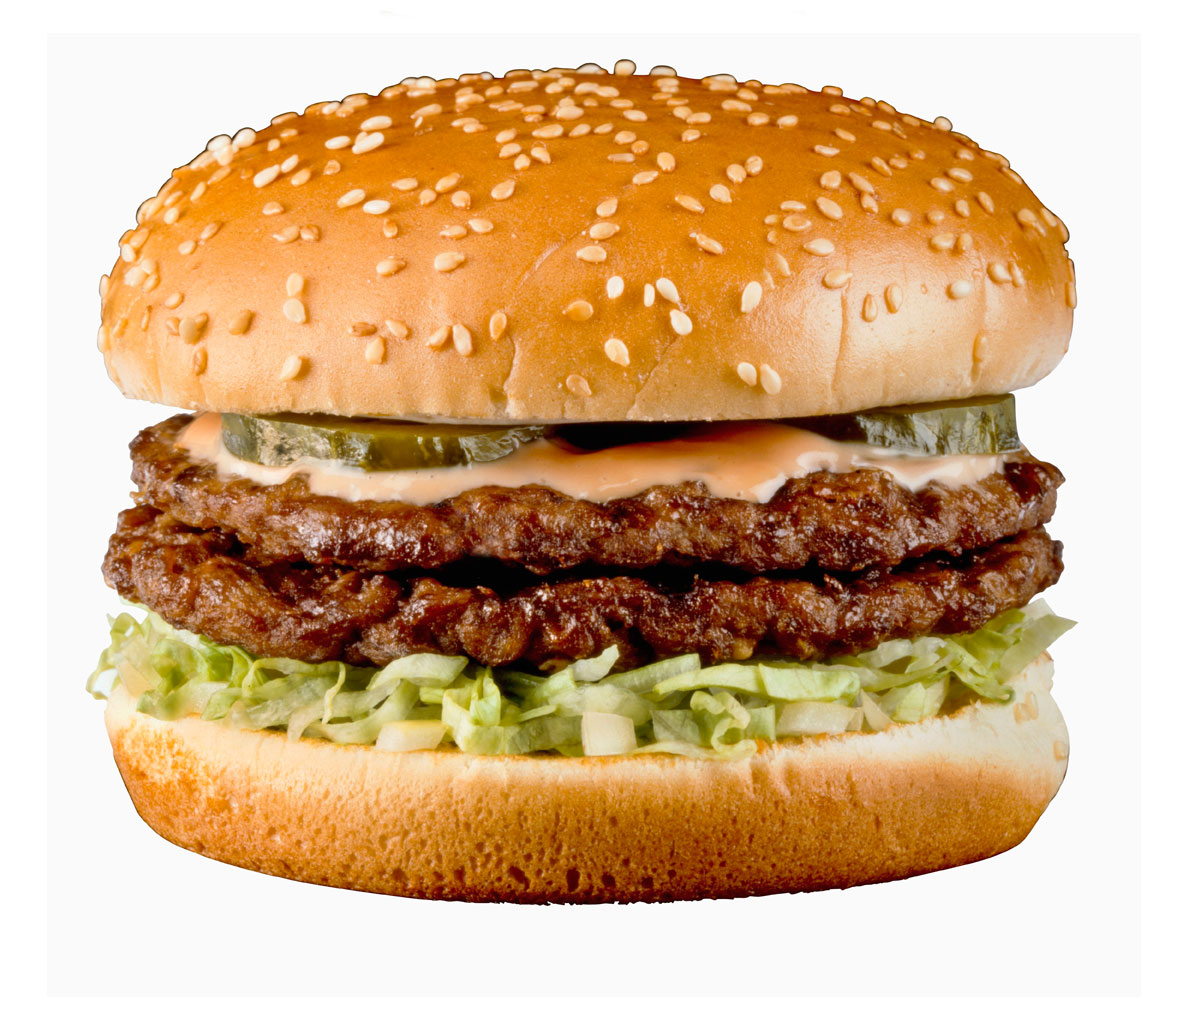 which is healthier a burger or fried chicken